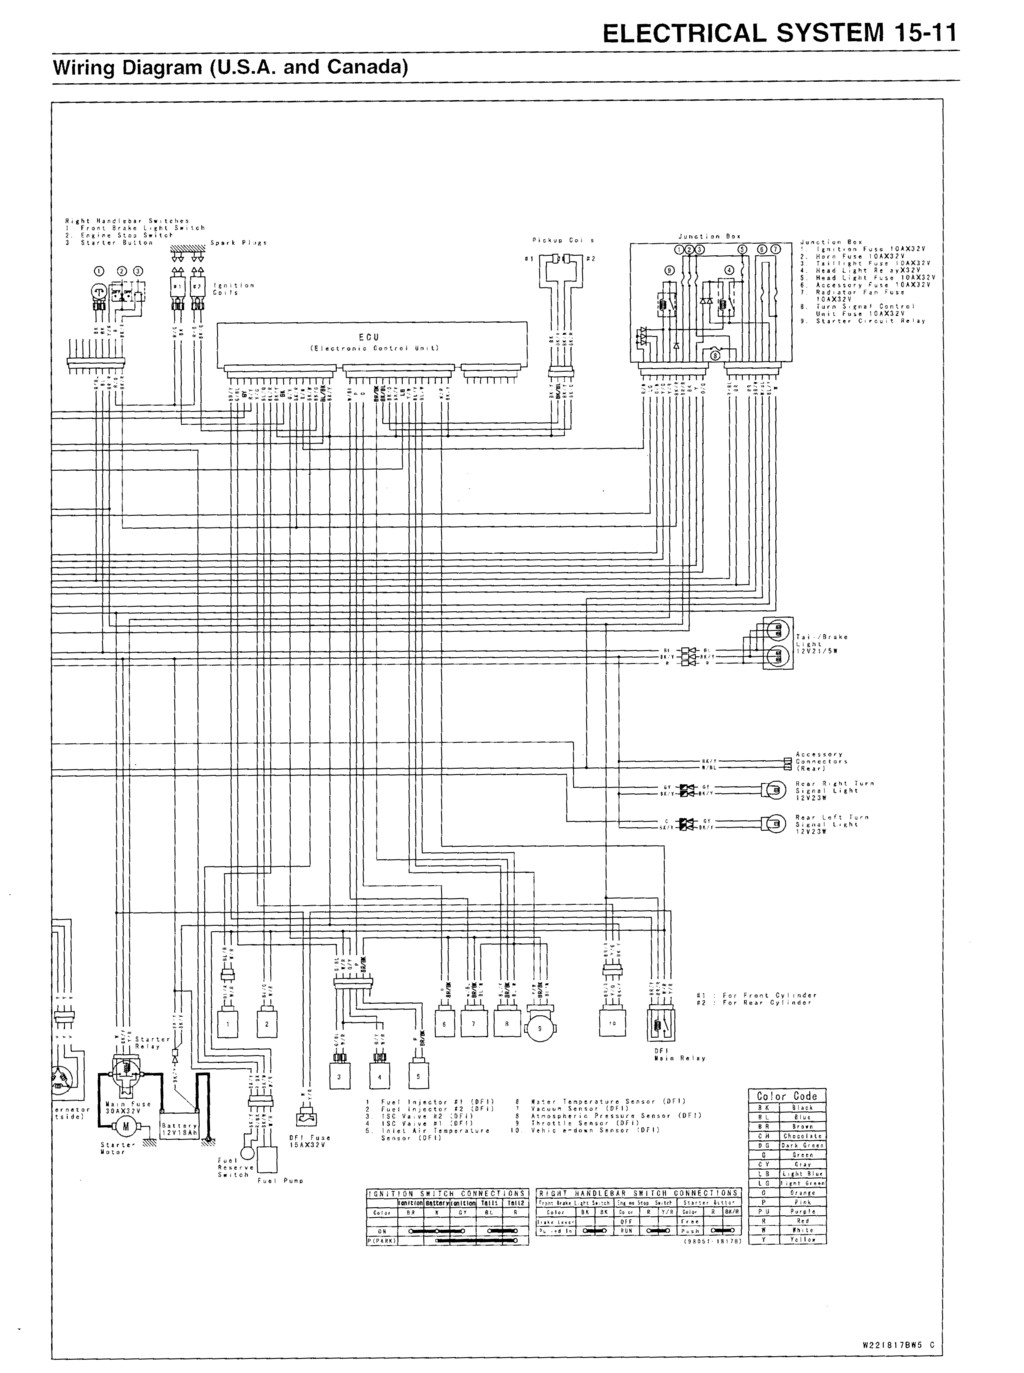 nomad_wiring_diagram_carbed_p2 vulcan wiring diagrams gadget's fixit page Kawasaki Vulcan 800 Wiring Diagram at arjmand.co